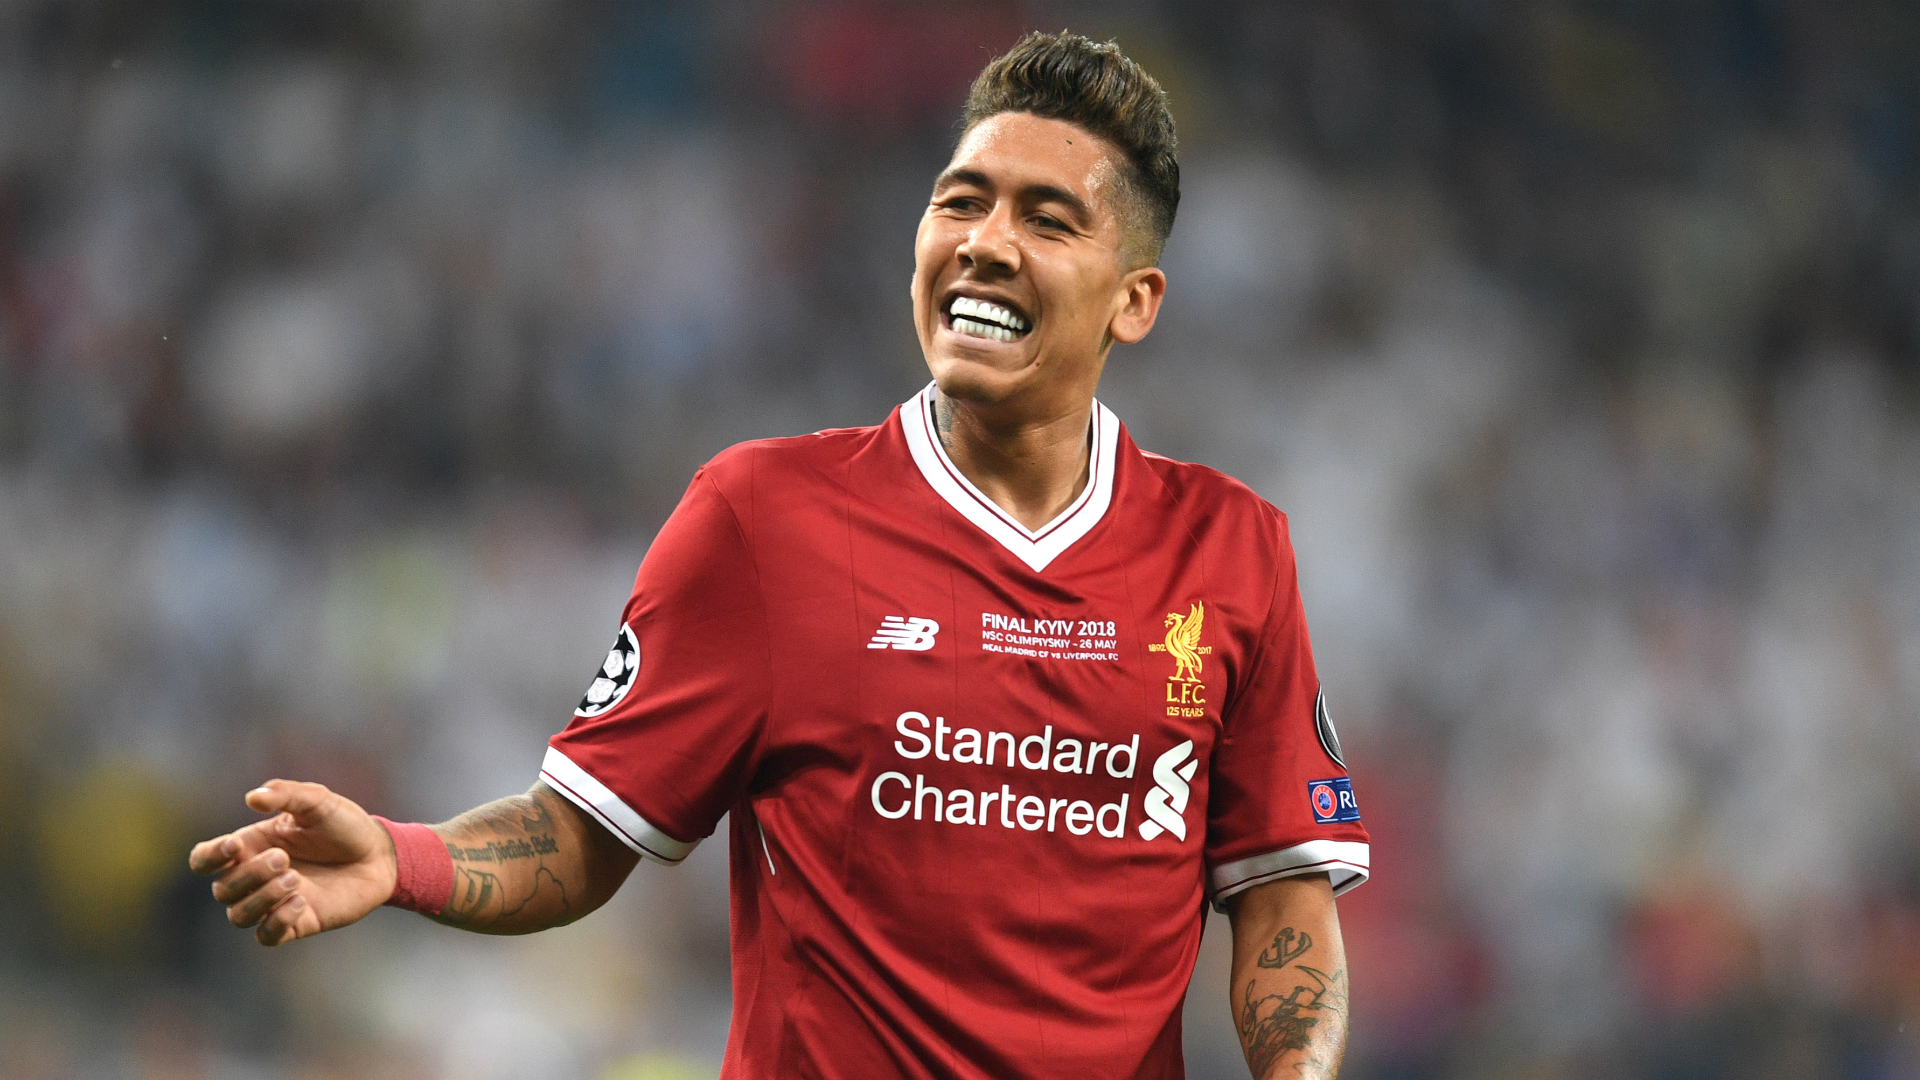 Firmino To Sit Out Liverpool's United States Tour